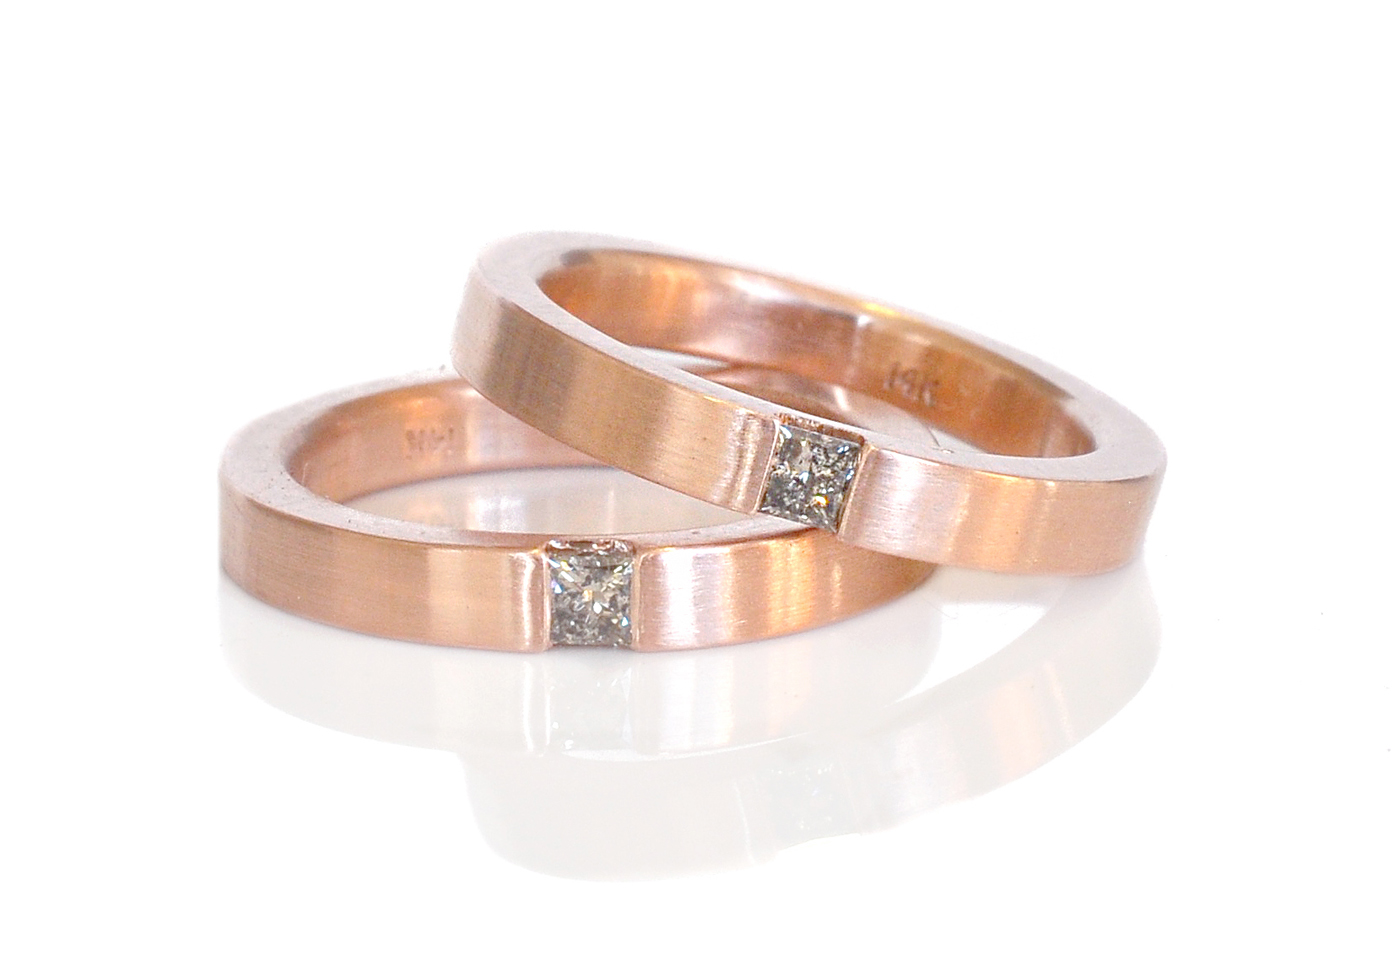 A classic modern wedding in satin finish 14k red gold with salt and pepper princess cut diamonds for an unexpected touch of darkness.